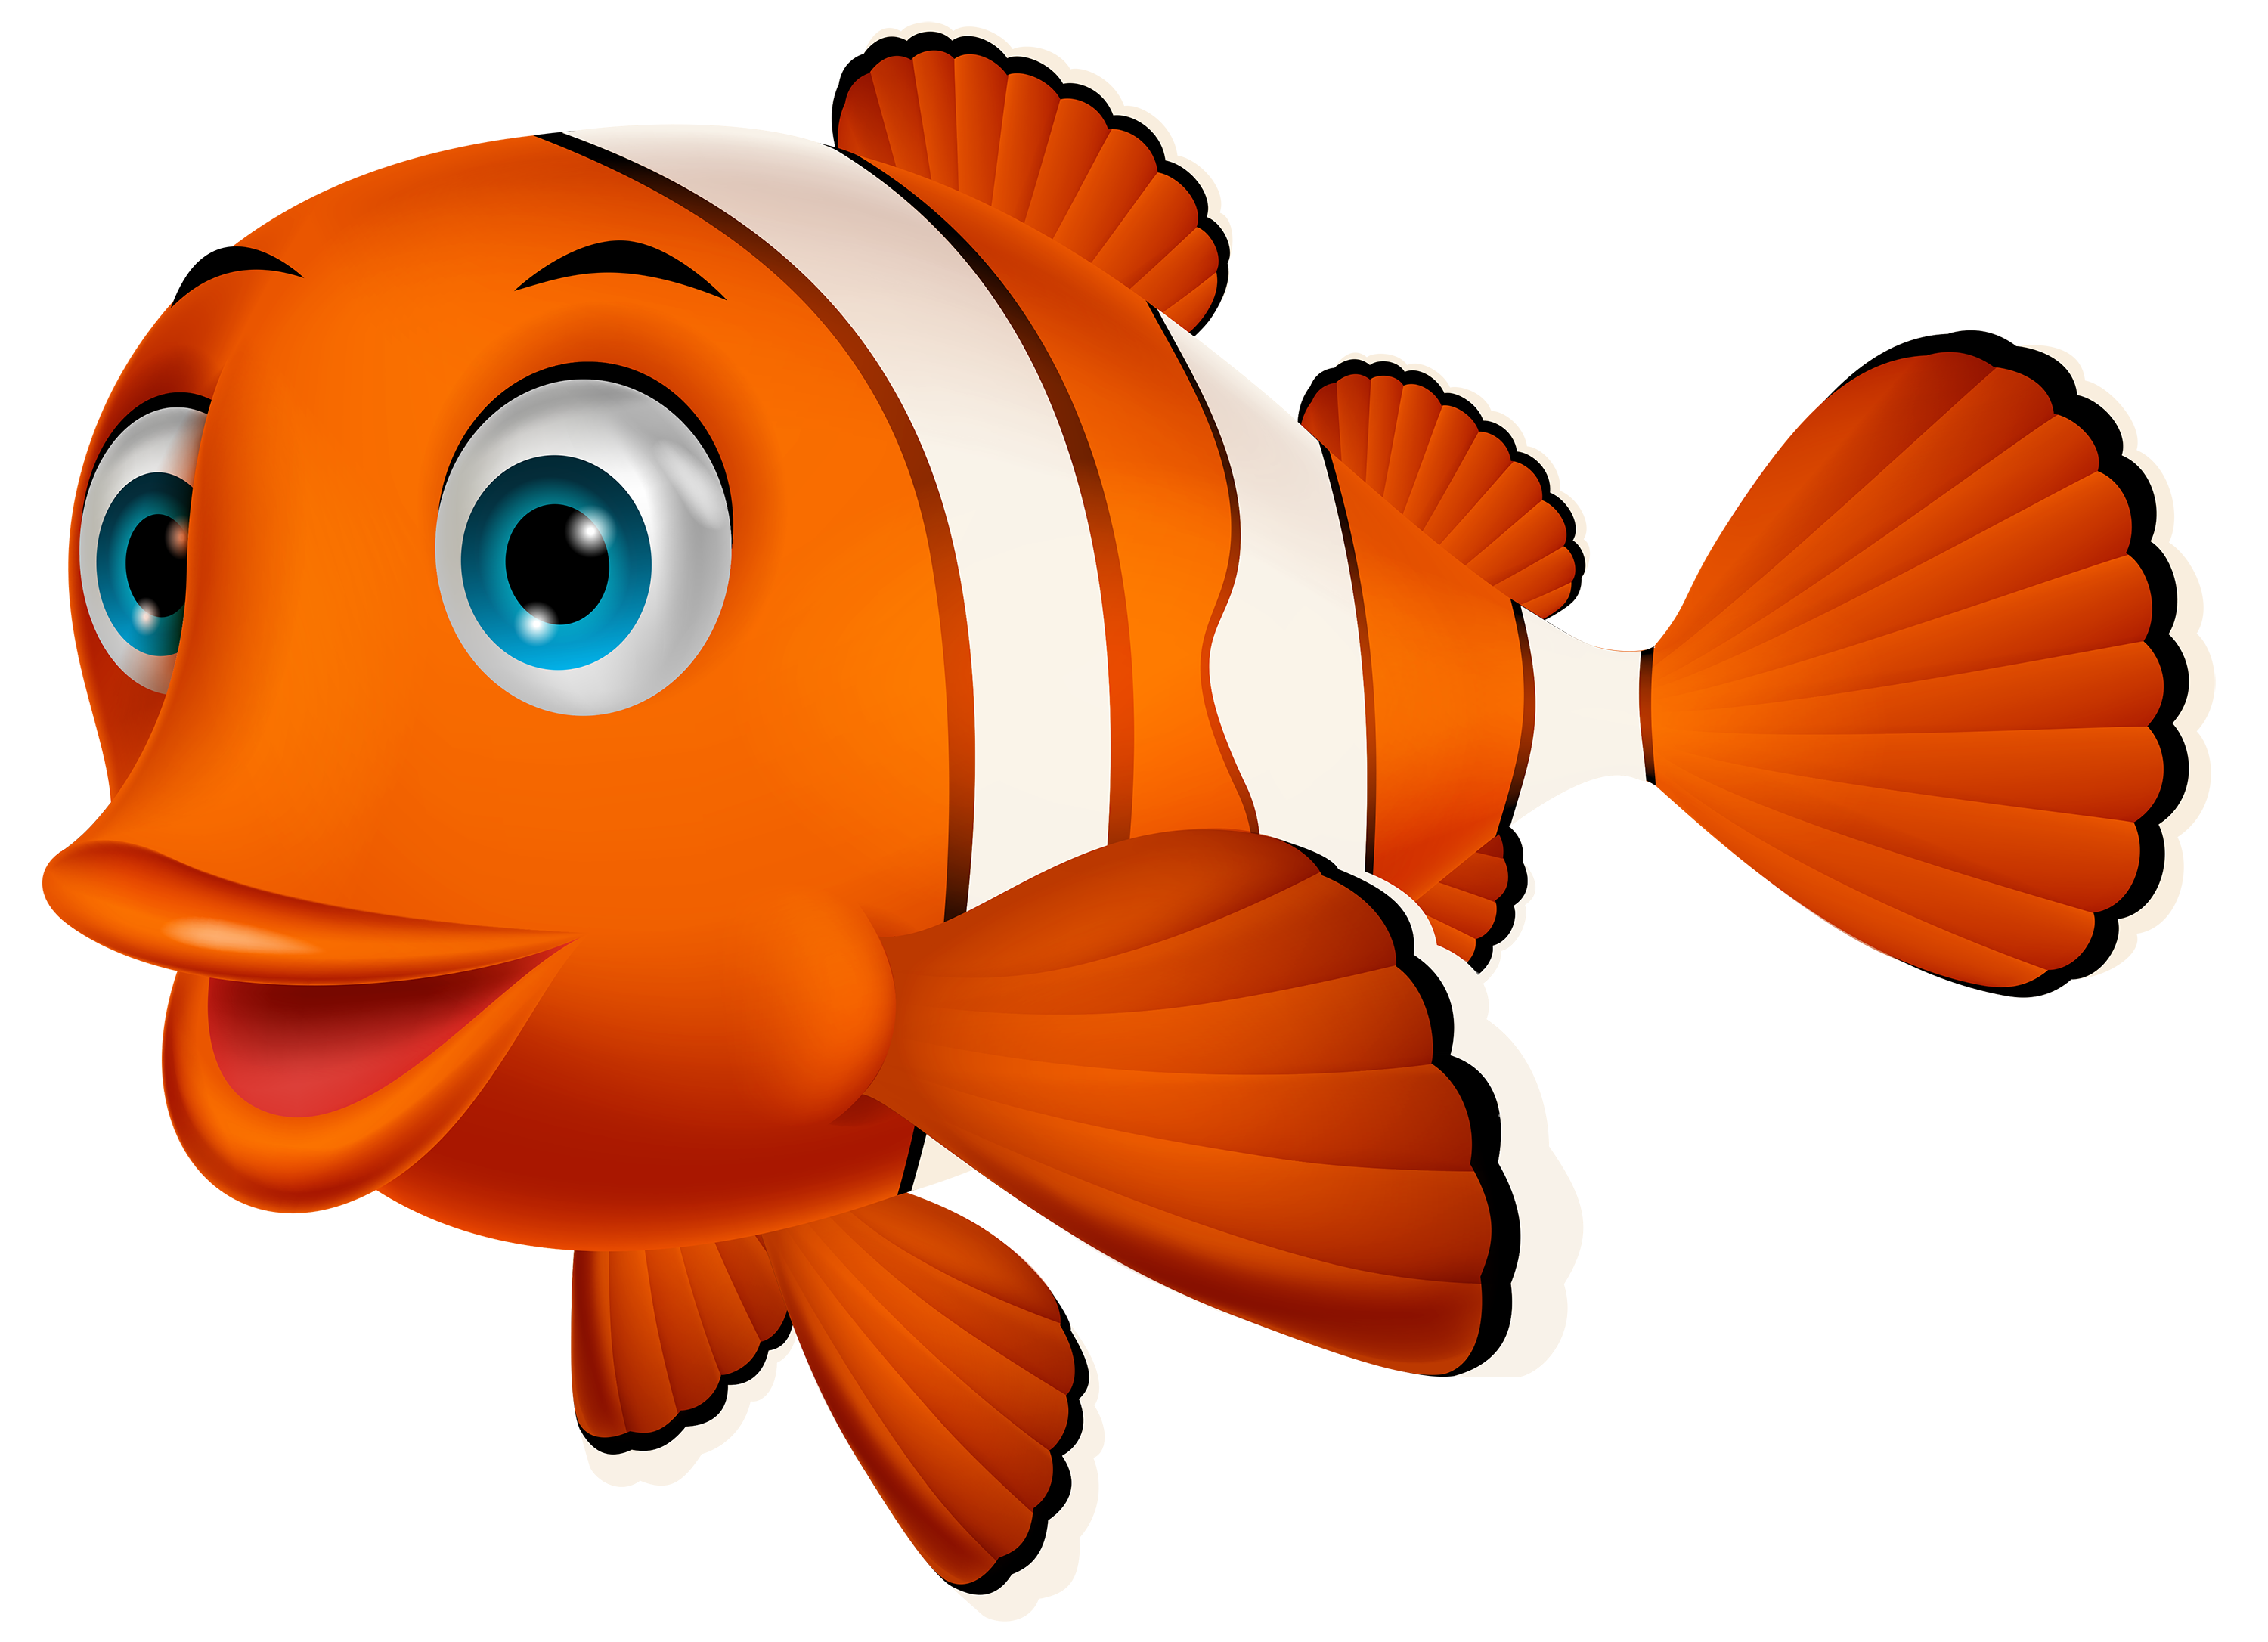 clipart transparent stock Fish royalty free download. Underwater vector.